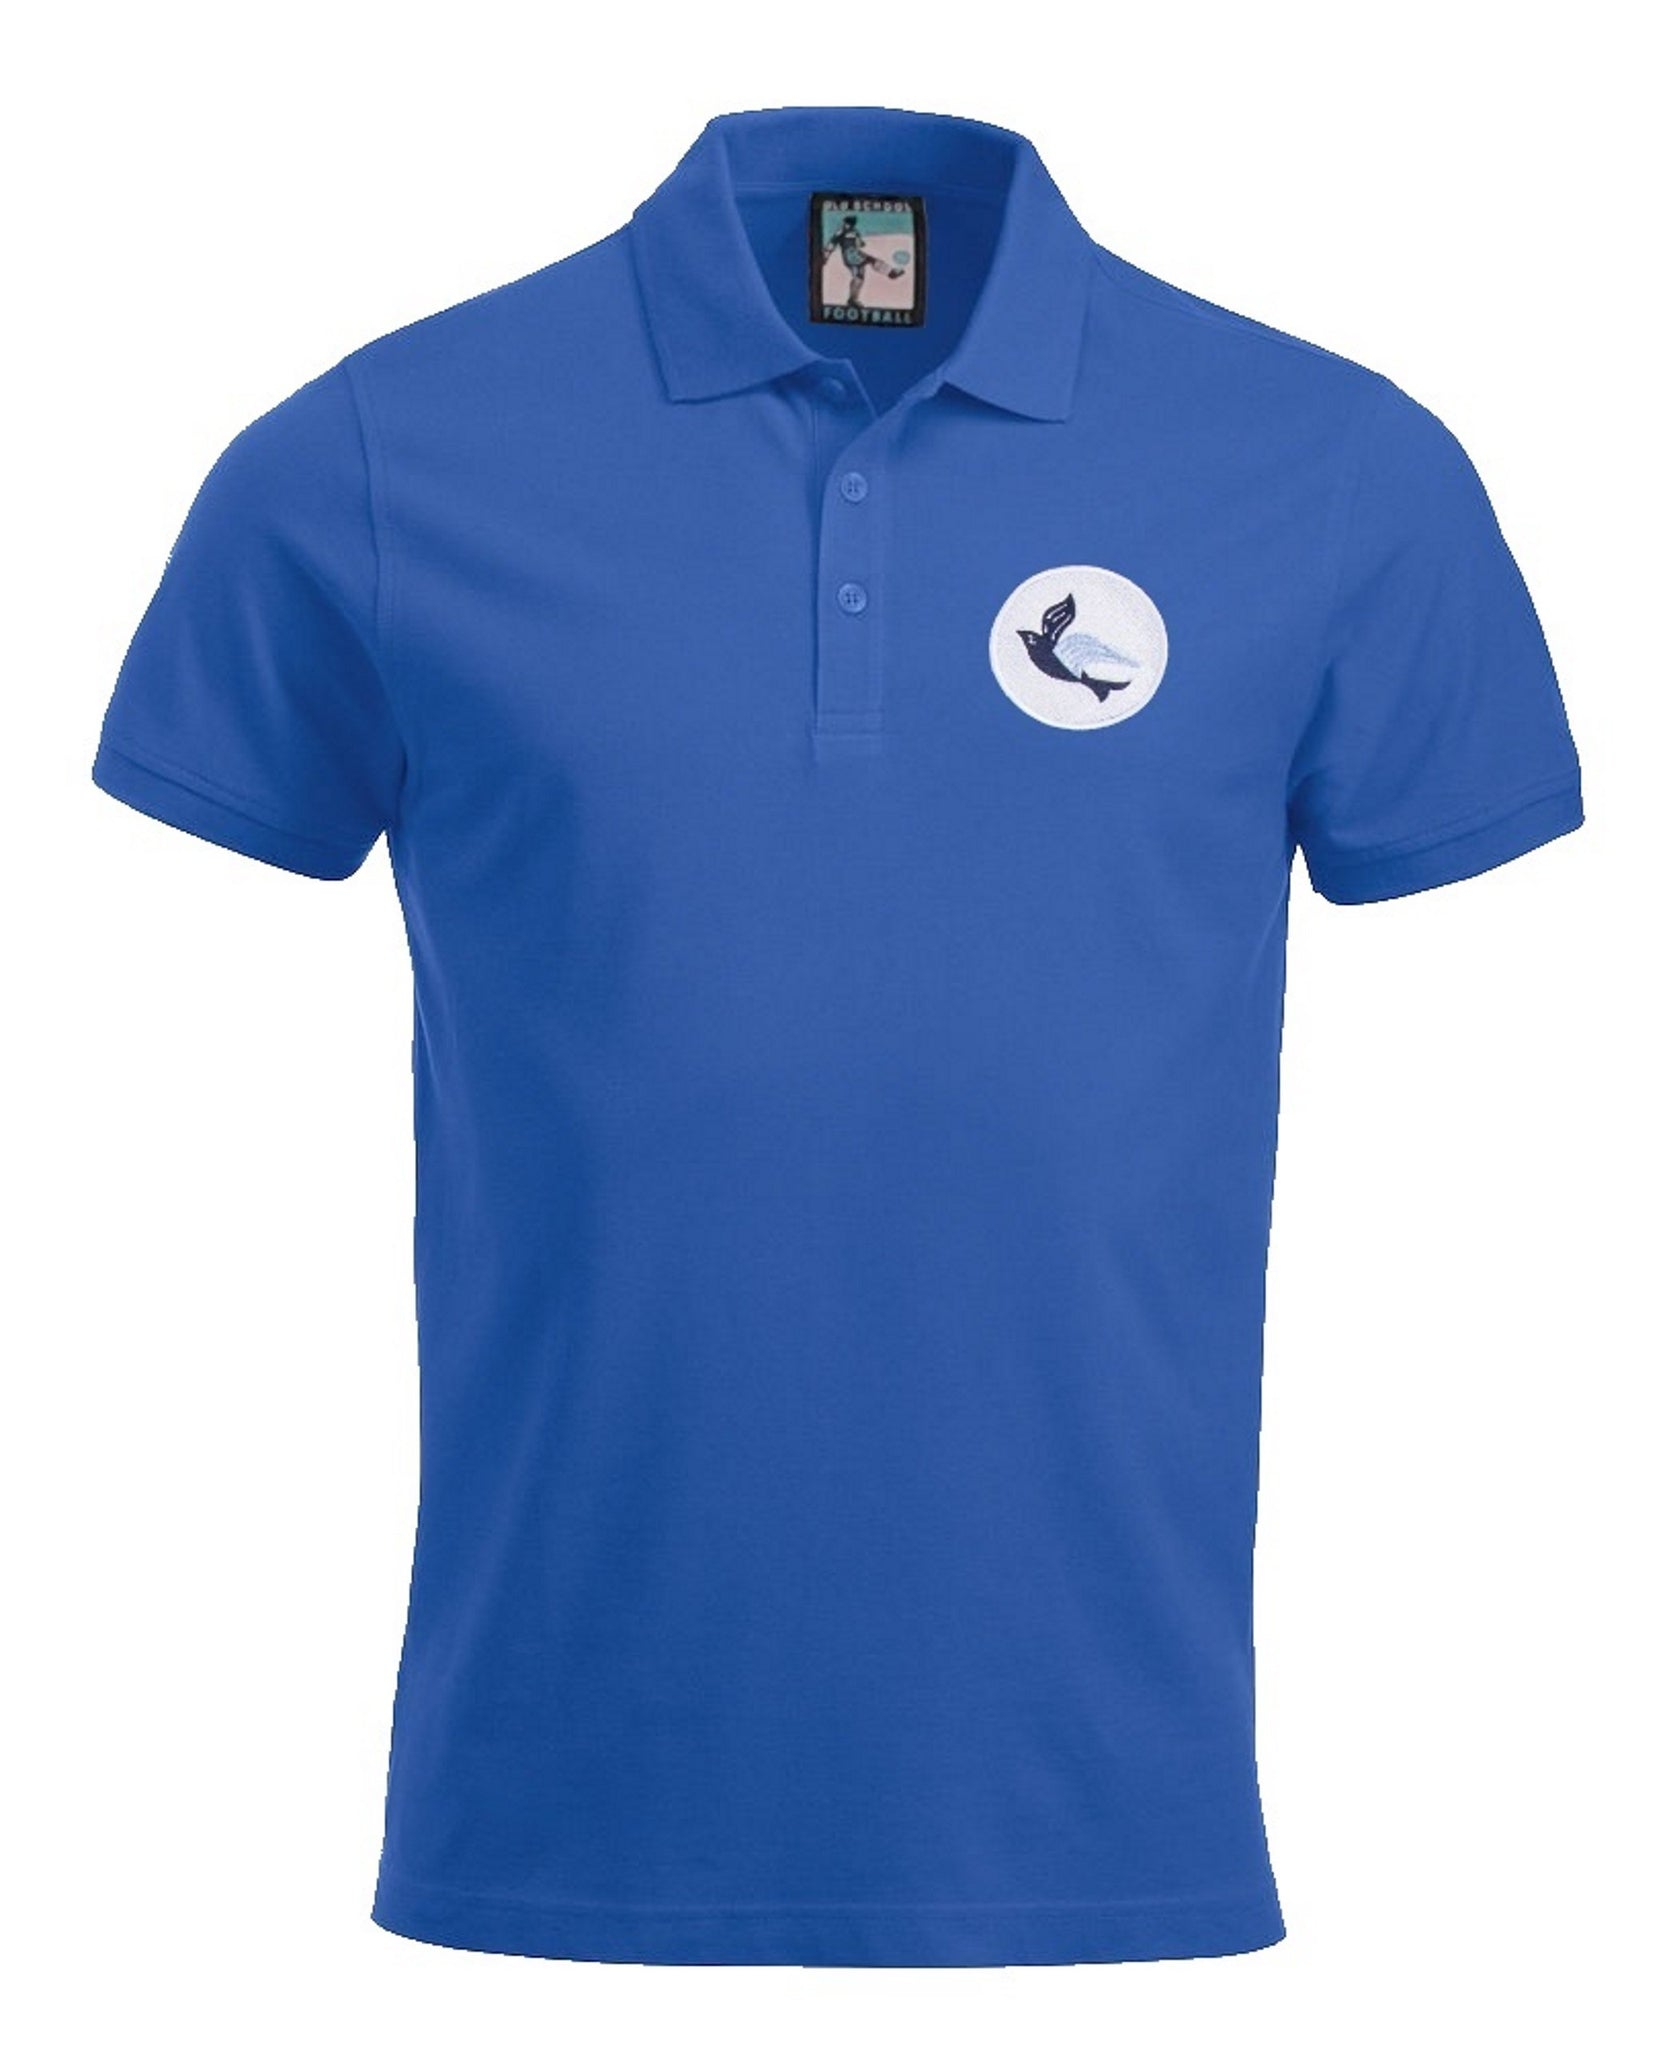 Cardiff City 1960's Polo - Old School Football